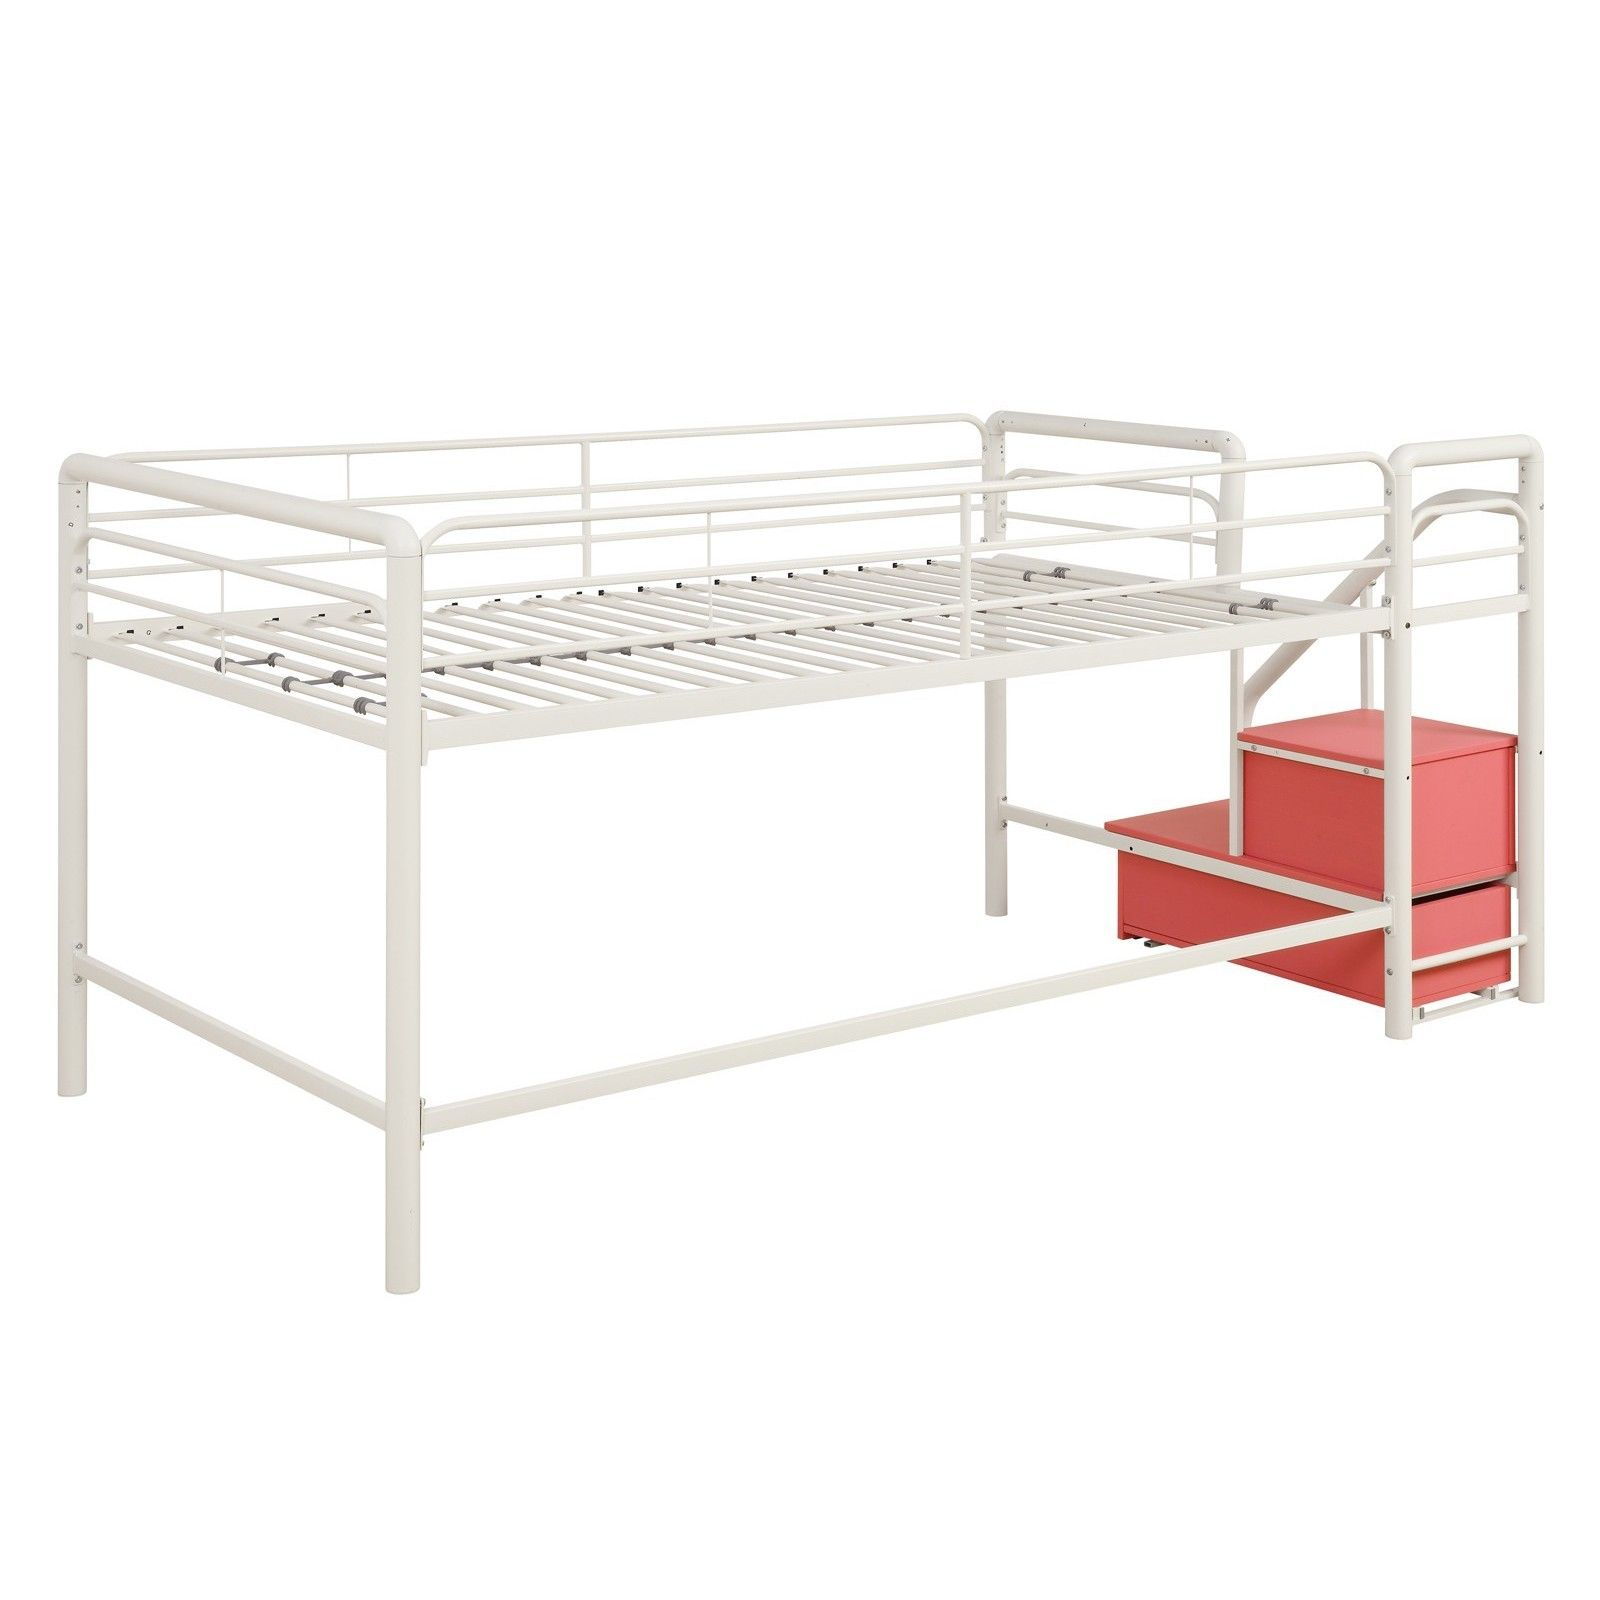 Junior loft bed with stairs  Your child will love staying underneath the loft and hiding their